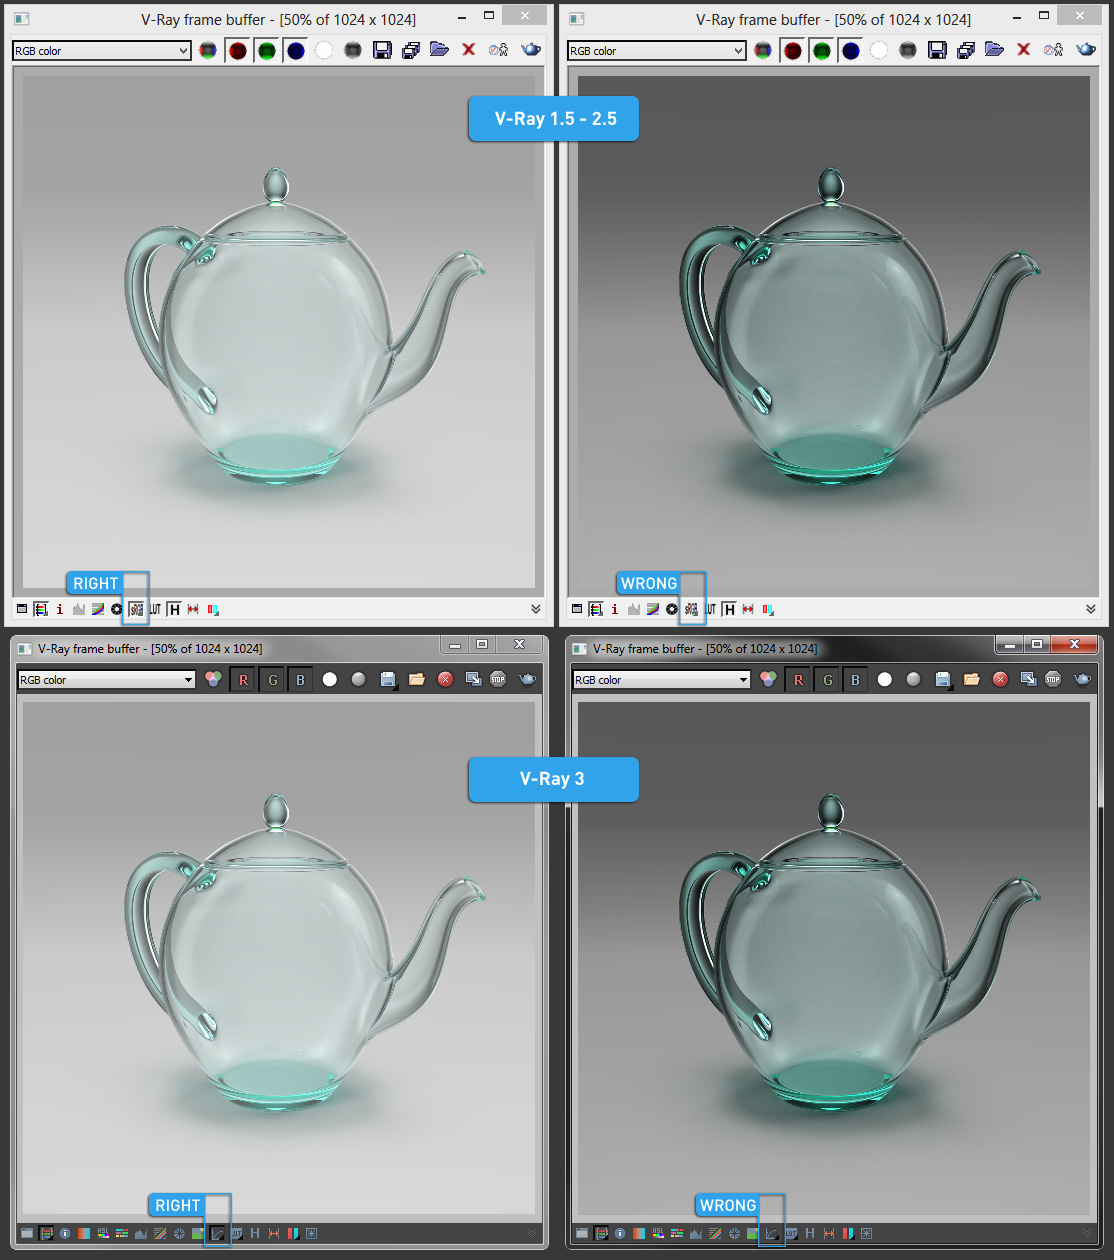 Vray framebuffer settings